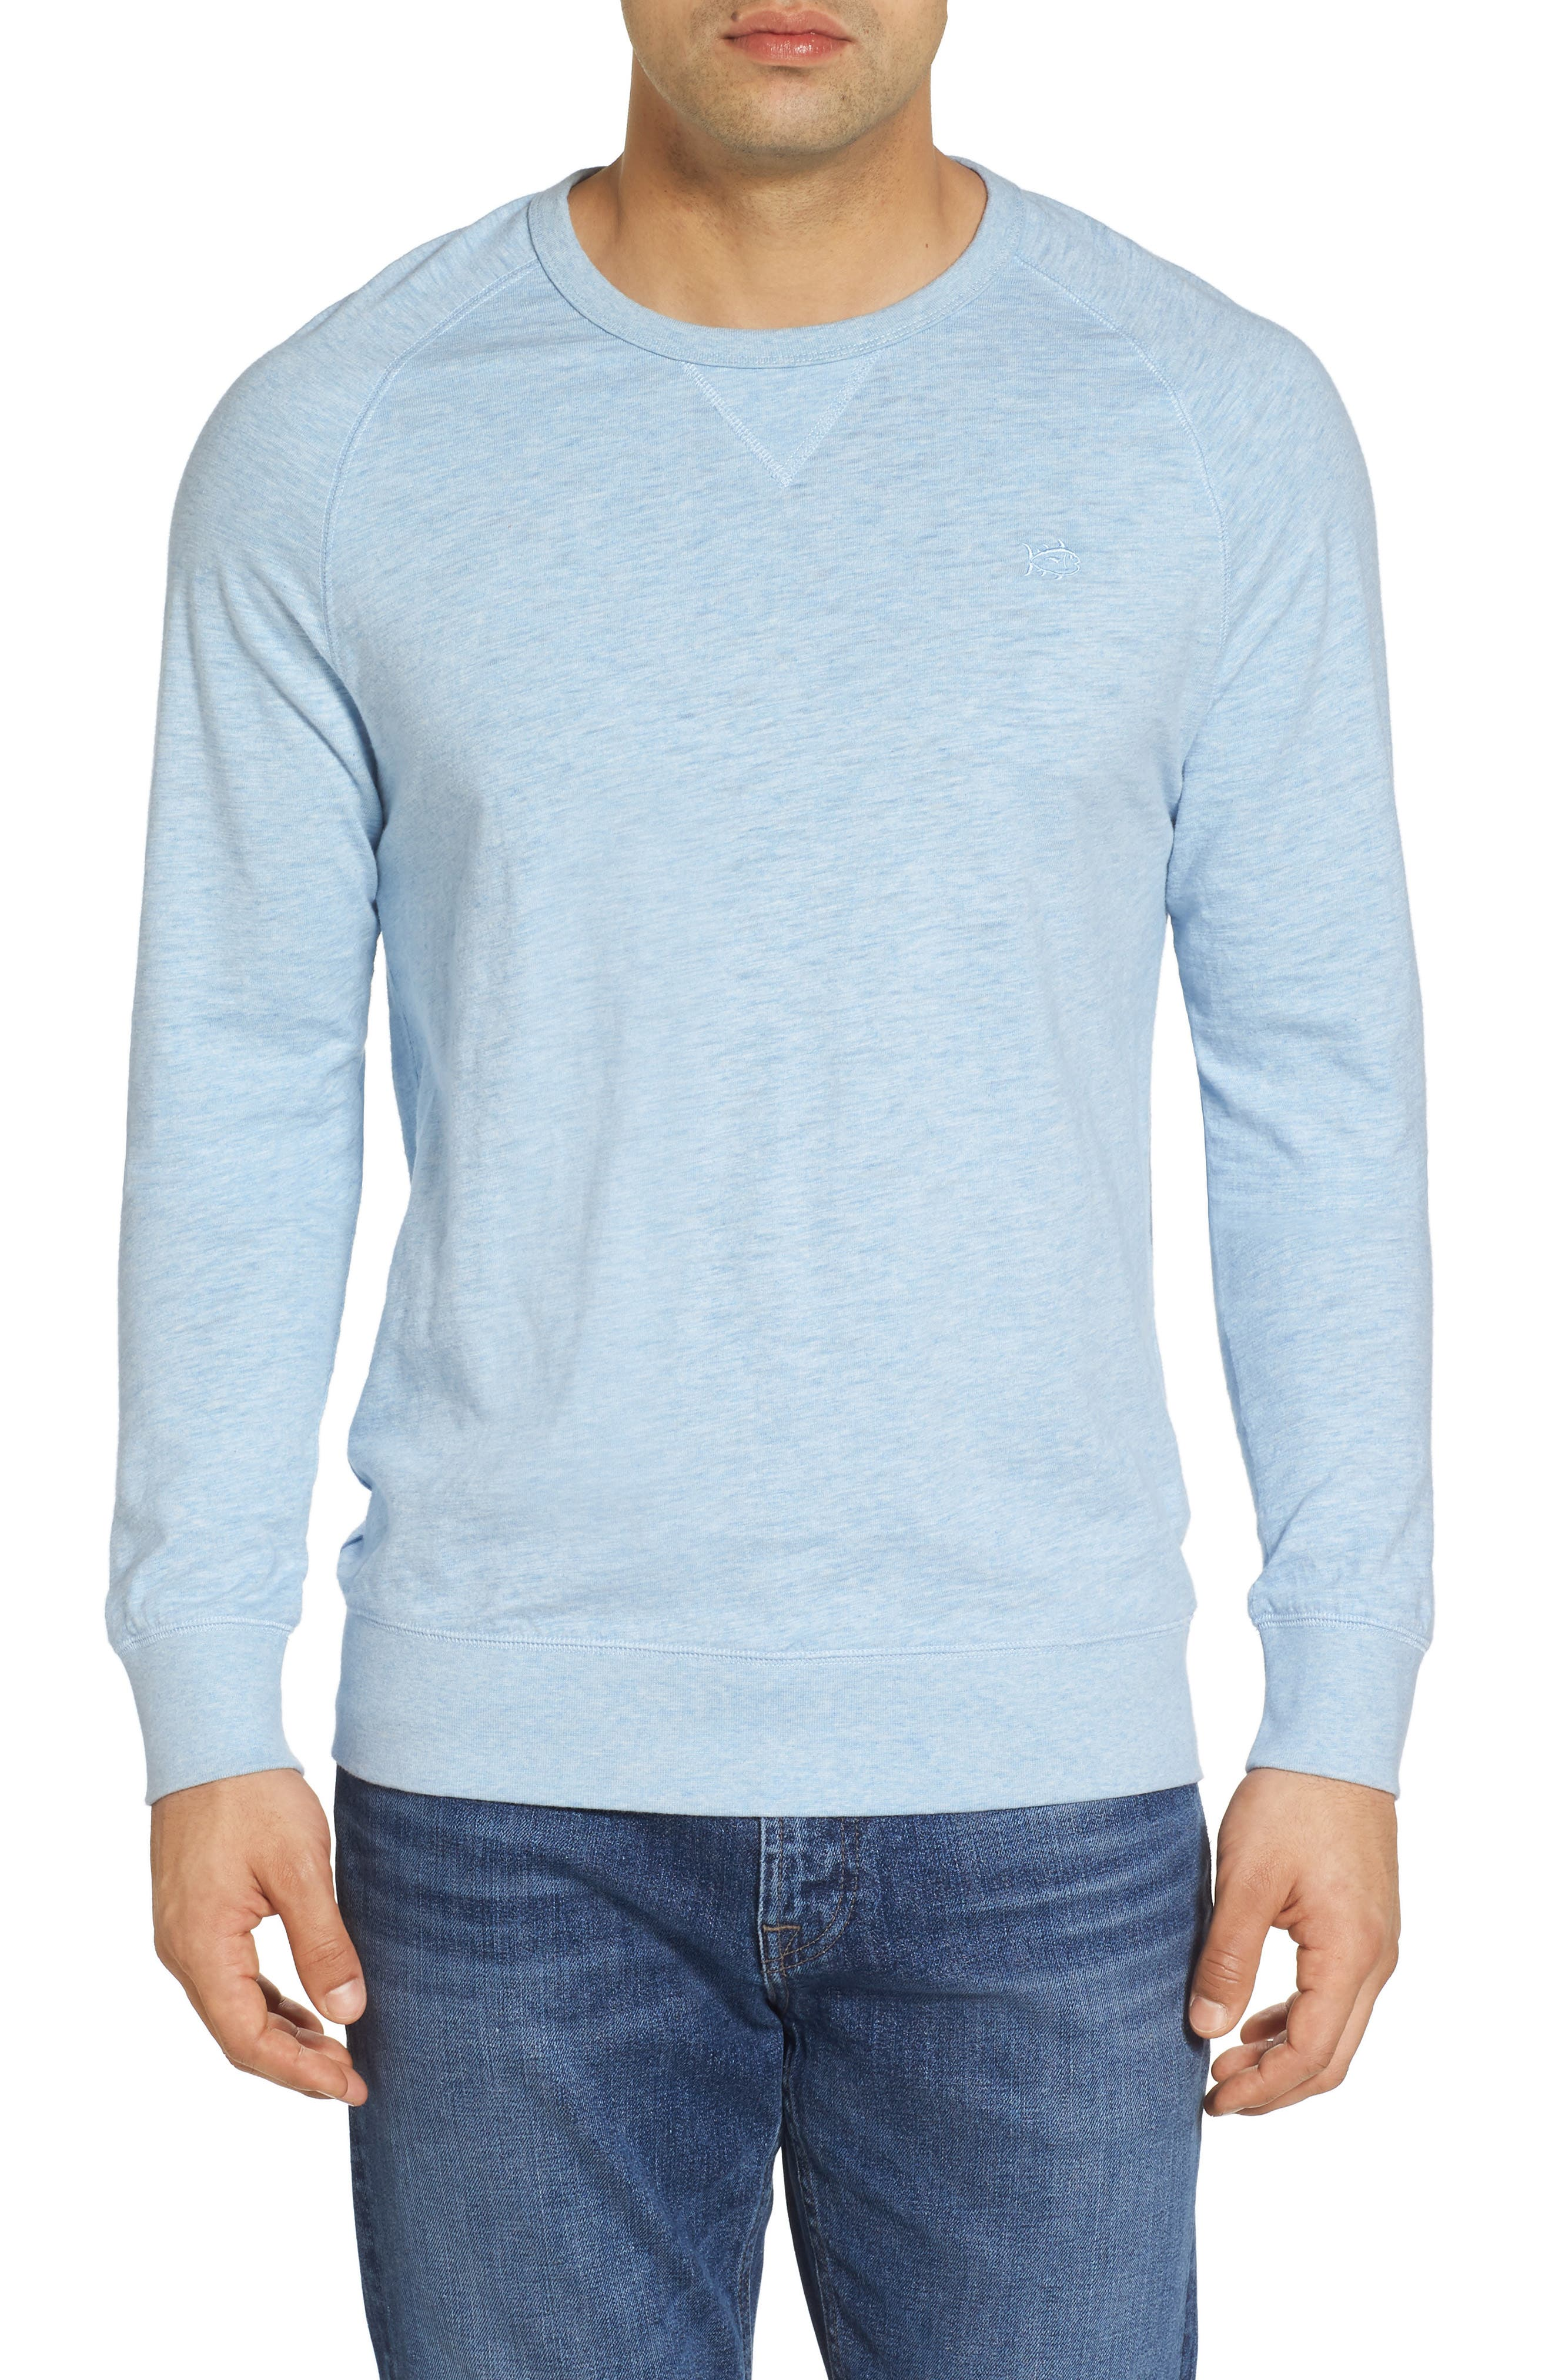 Ocean Course Crewneck Sweatshirt,                             Main thumbnail 1, color,                             450